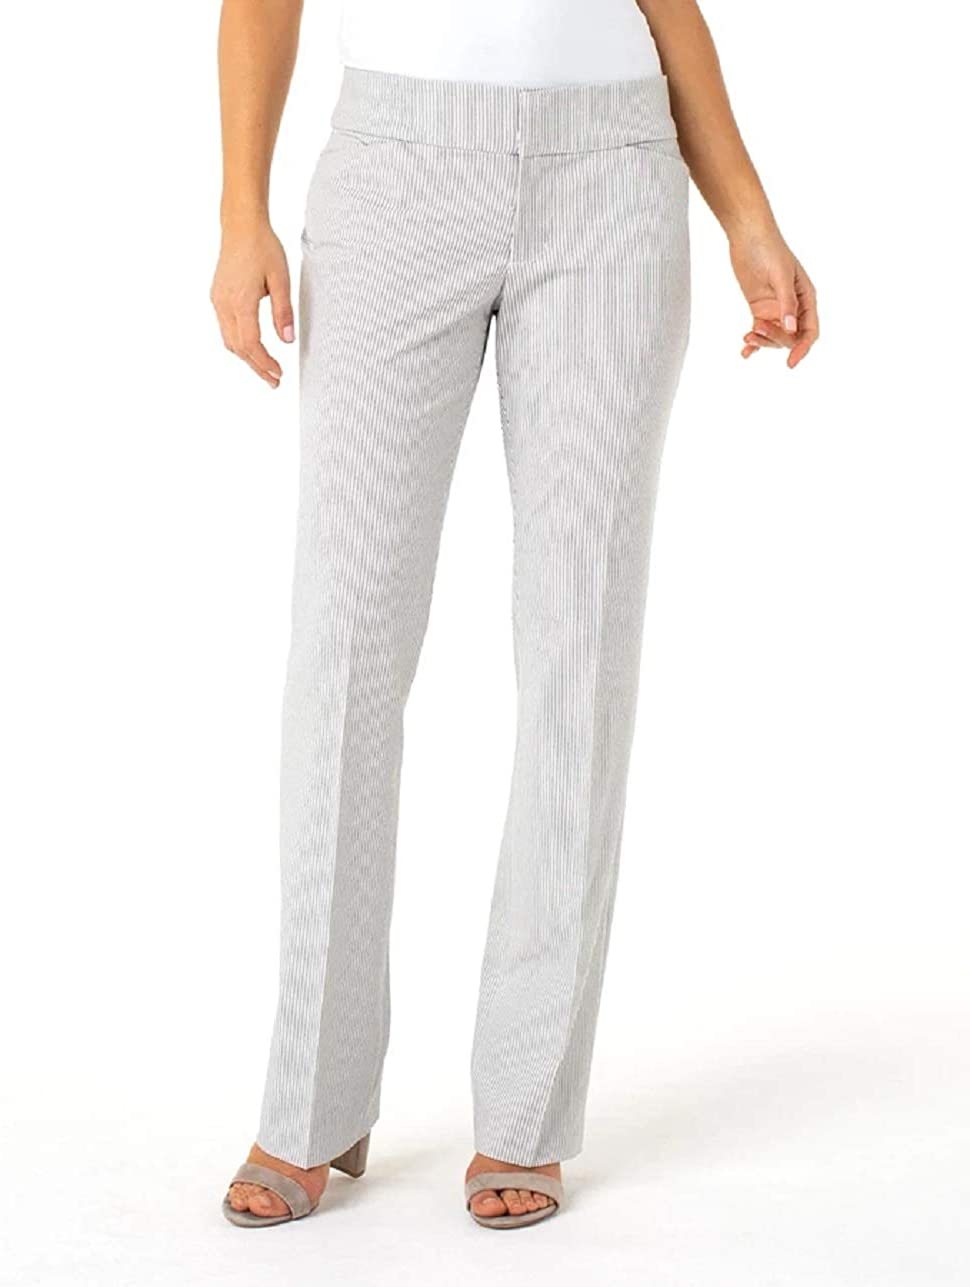 Liverpool Women's Graham Bootcut Trousers in Ministripe Print